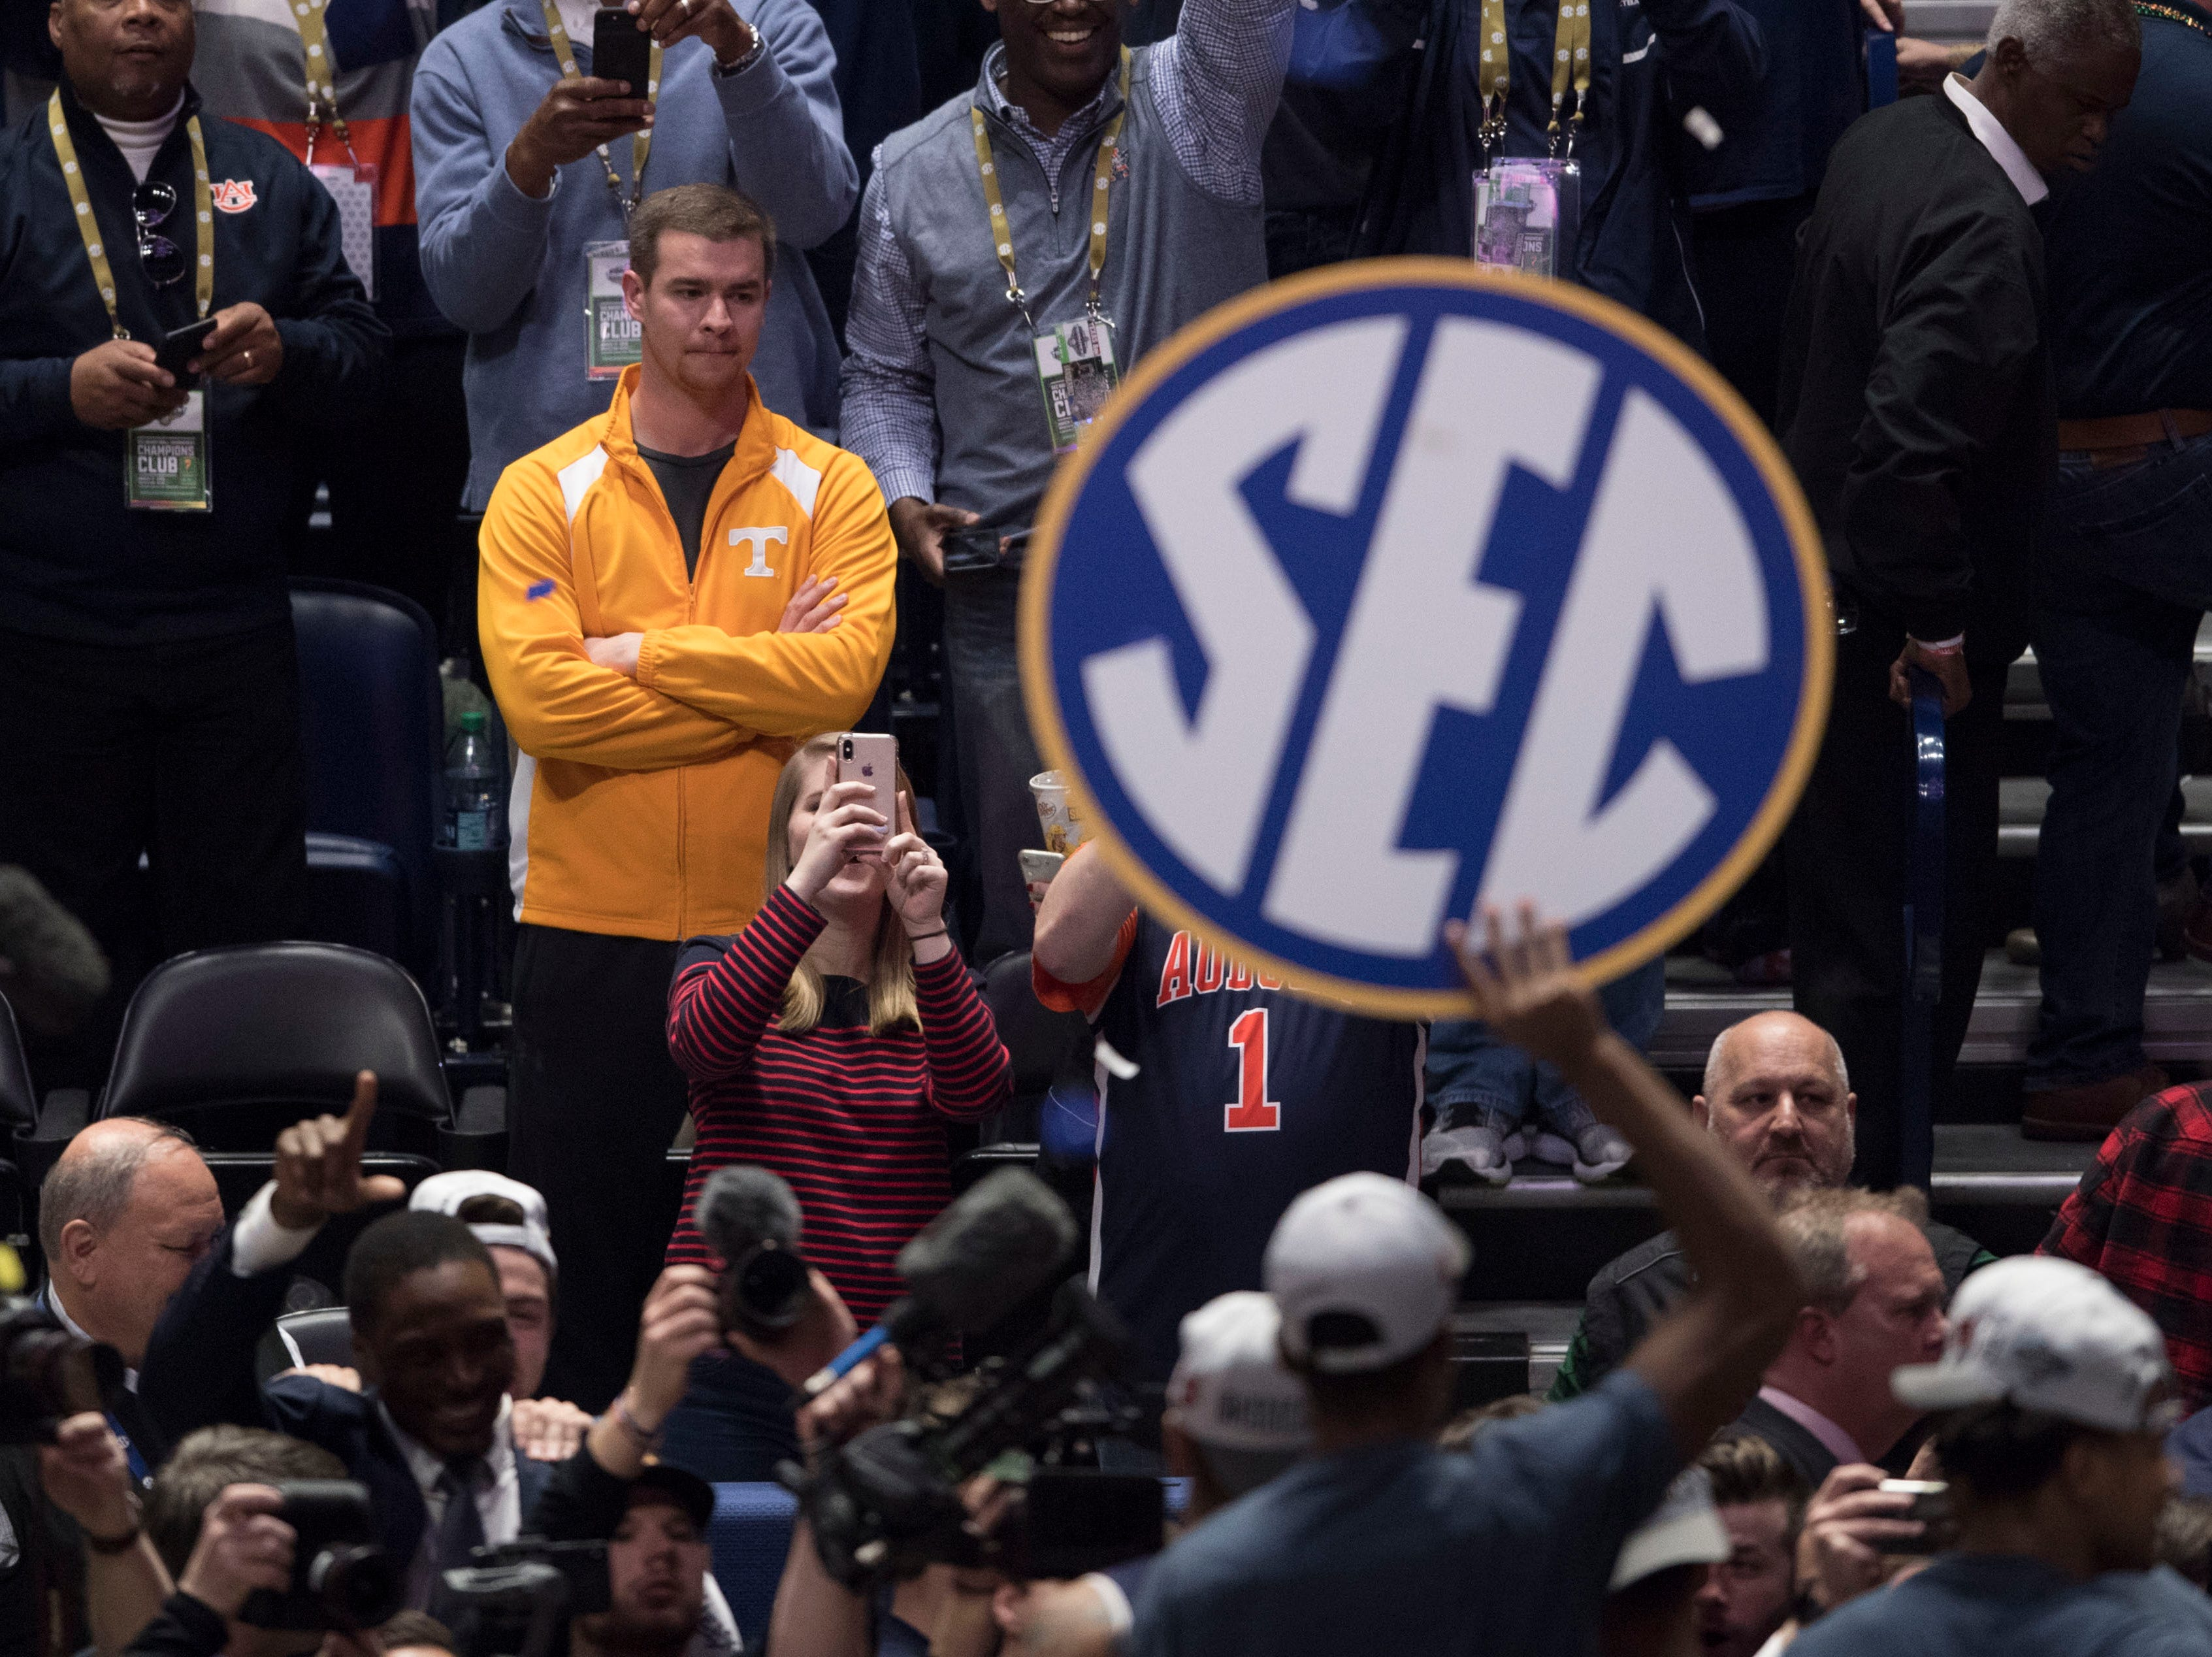 A Tennessee fan watches on as Auburn celebrates after the SEC Men's Basketball Tournament championship game at Bridgestone Arena in Nashville, Tenn., Sunday, March 17, 2019.